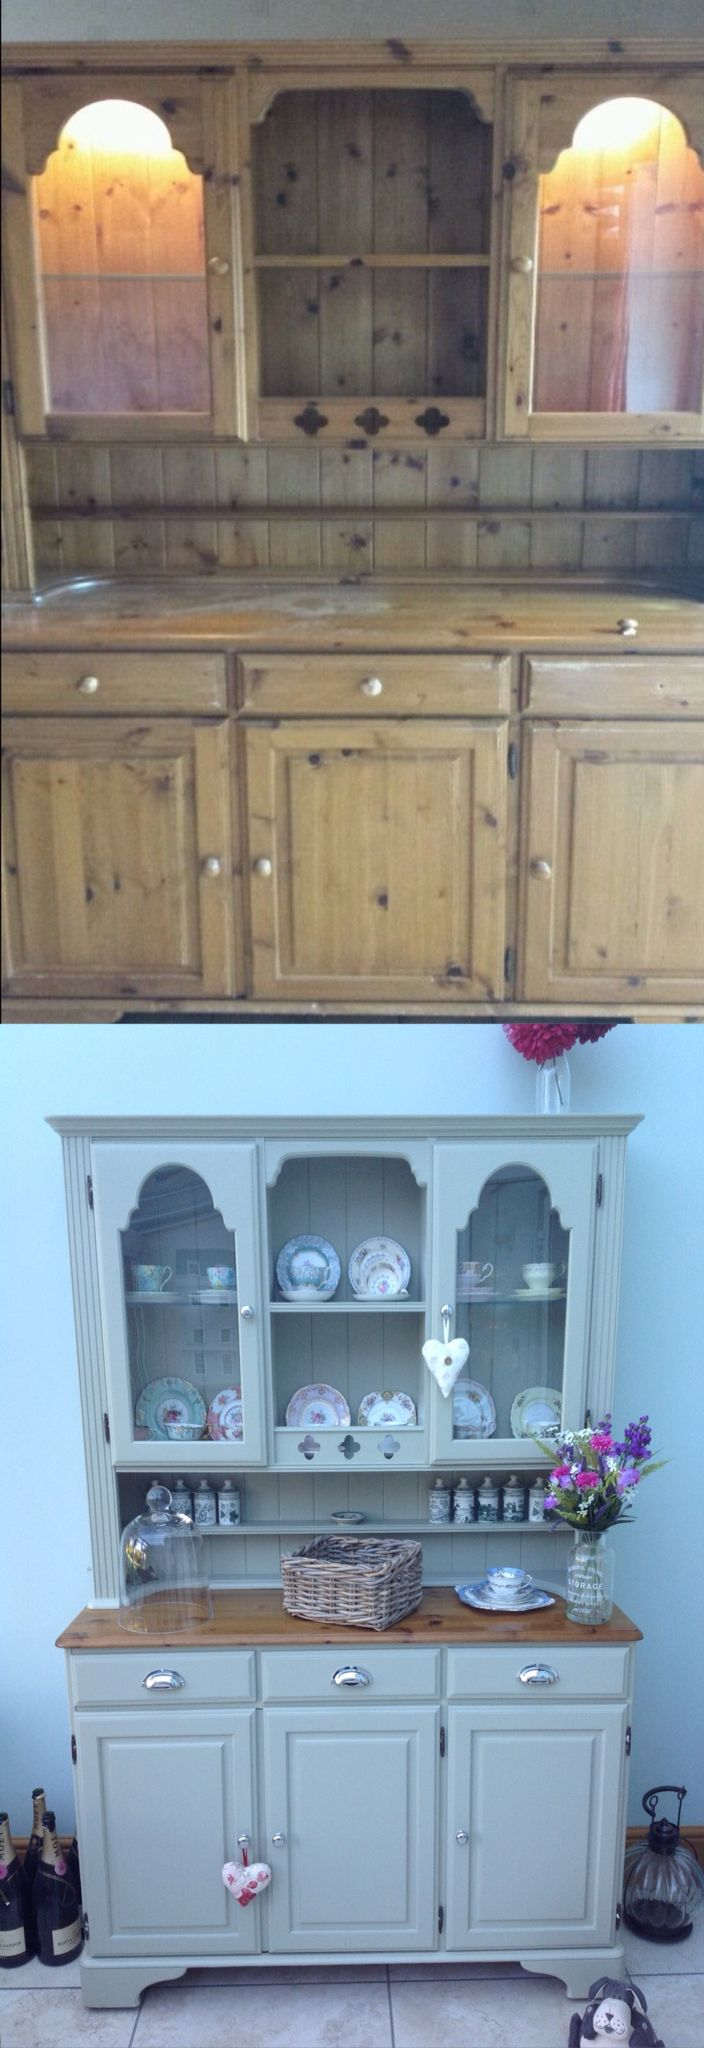 welsh dresser makeover - Kitchen Dresser